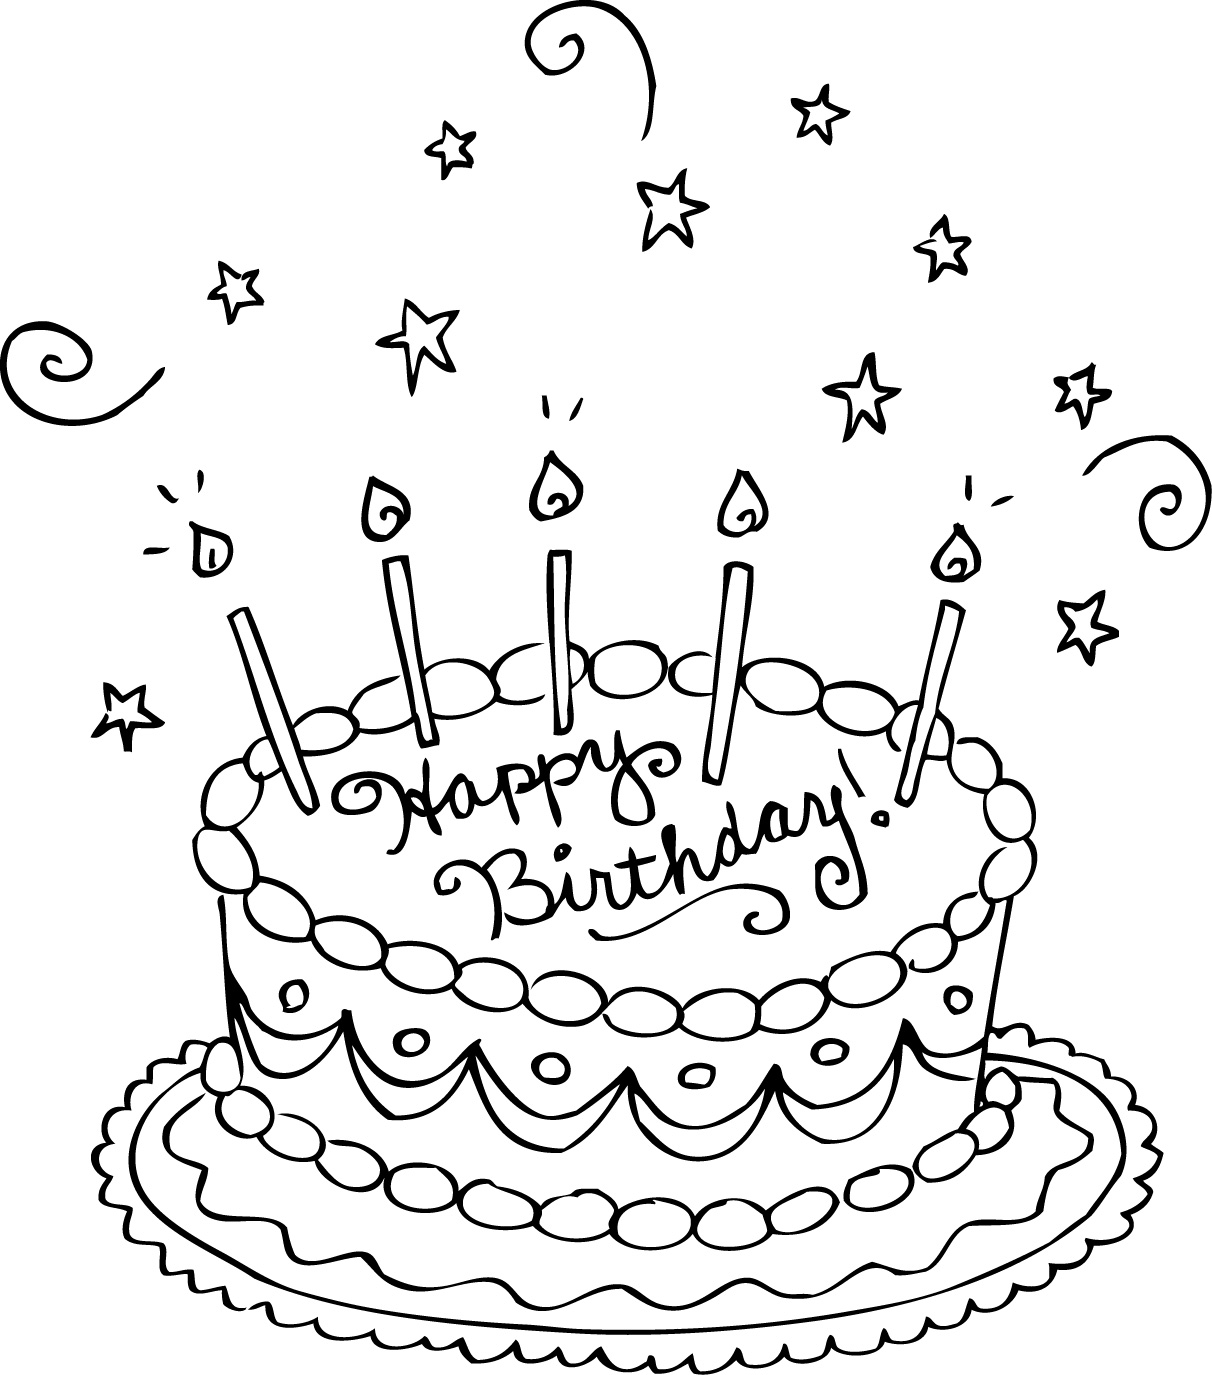 Free Printable Birthday Cake Coloring Pages For Kids Birthday Coloring Pages For Printable